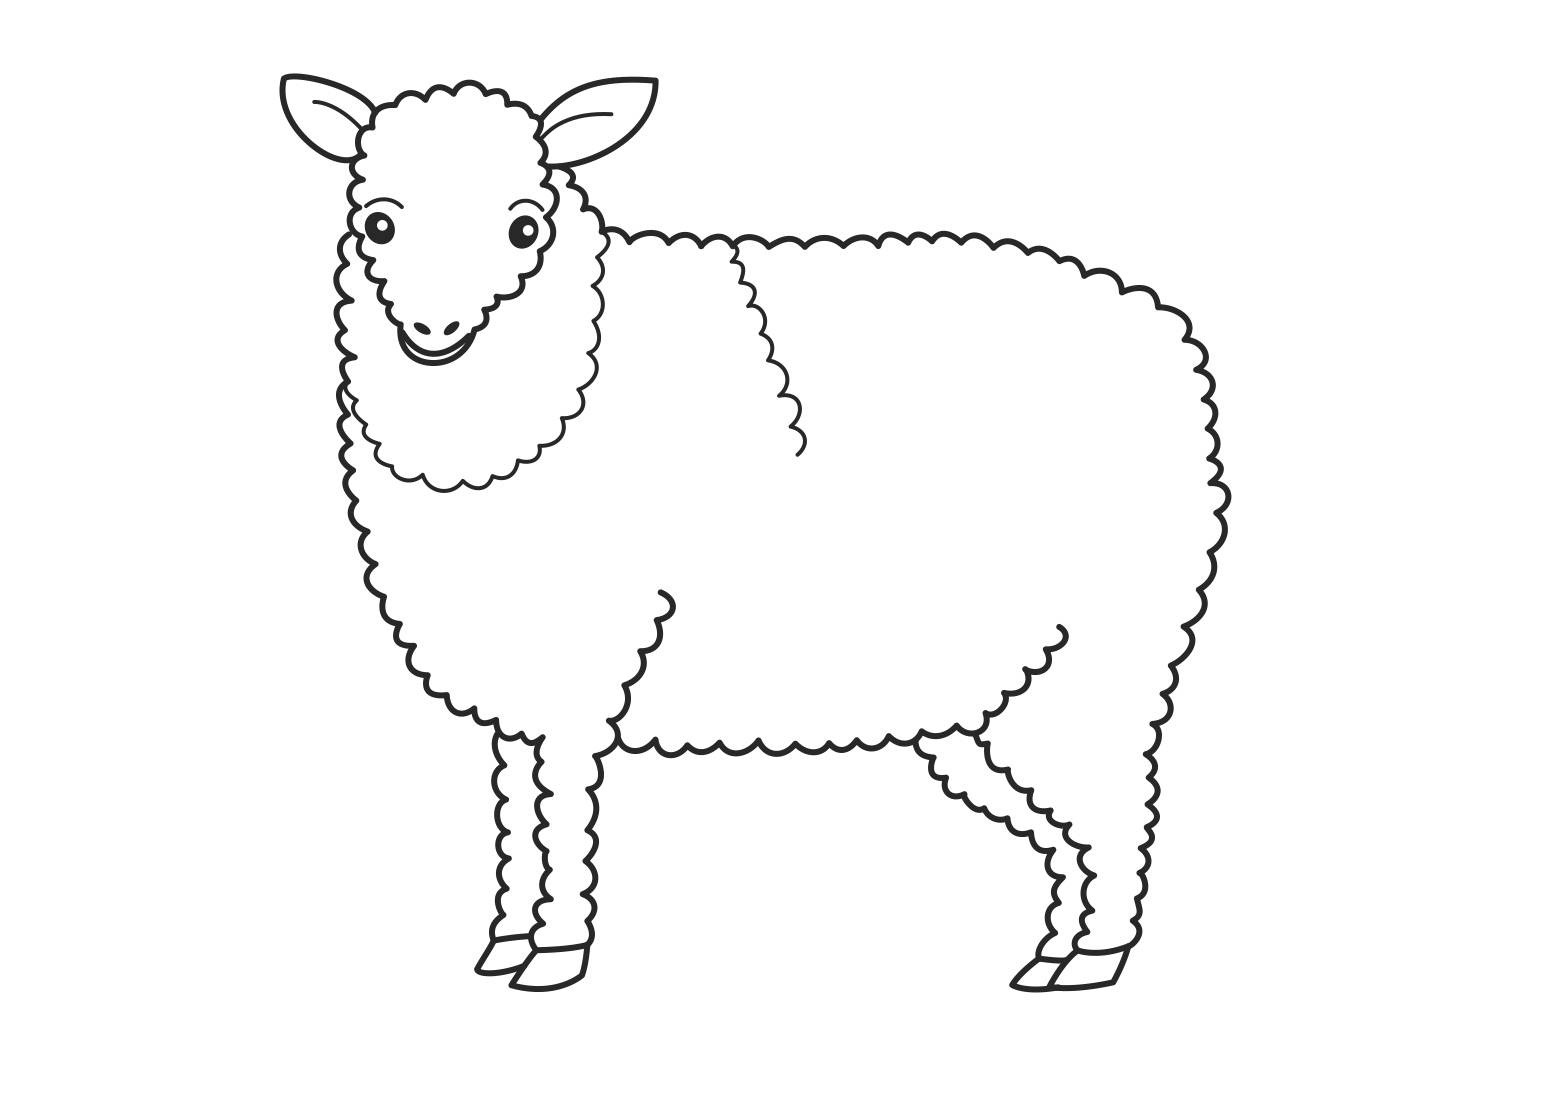 sheep coloring pages to print sheep coloring page crayolacom print sheep coloring pages to